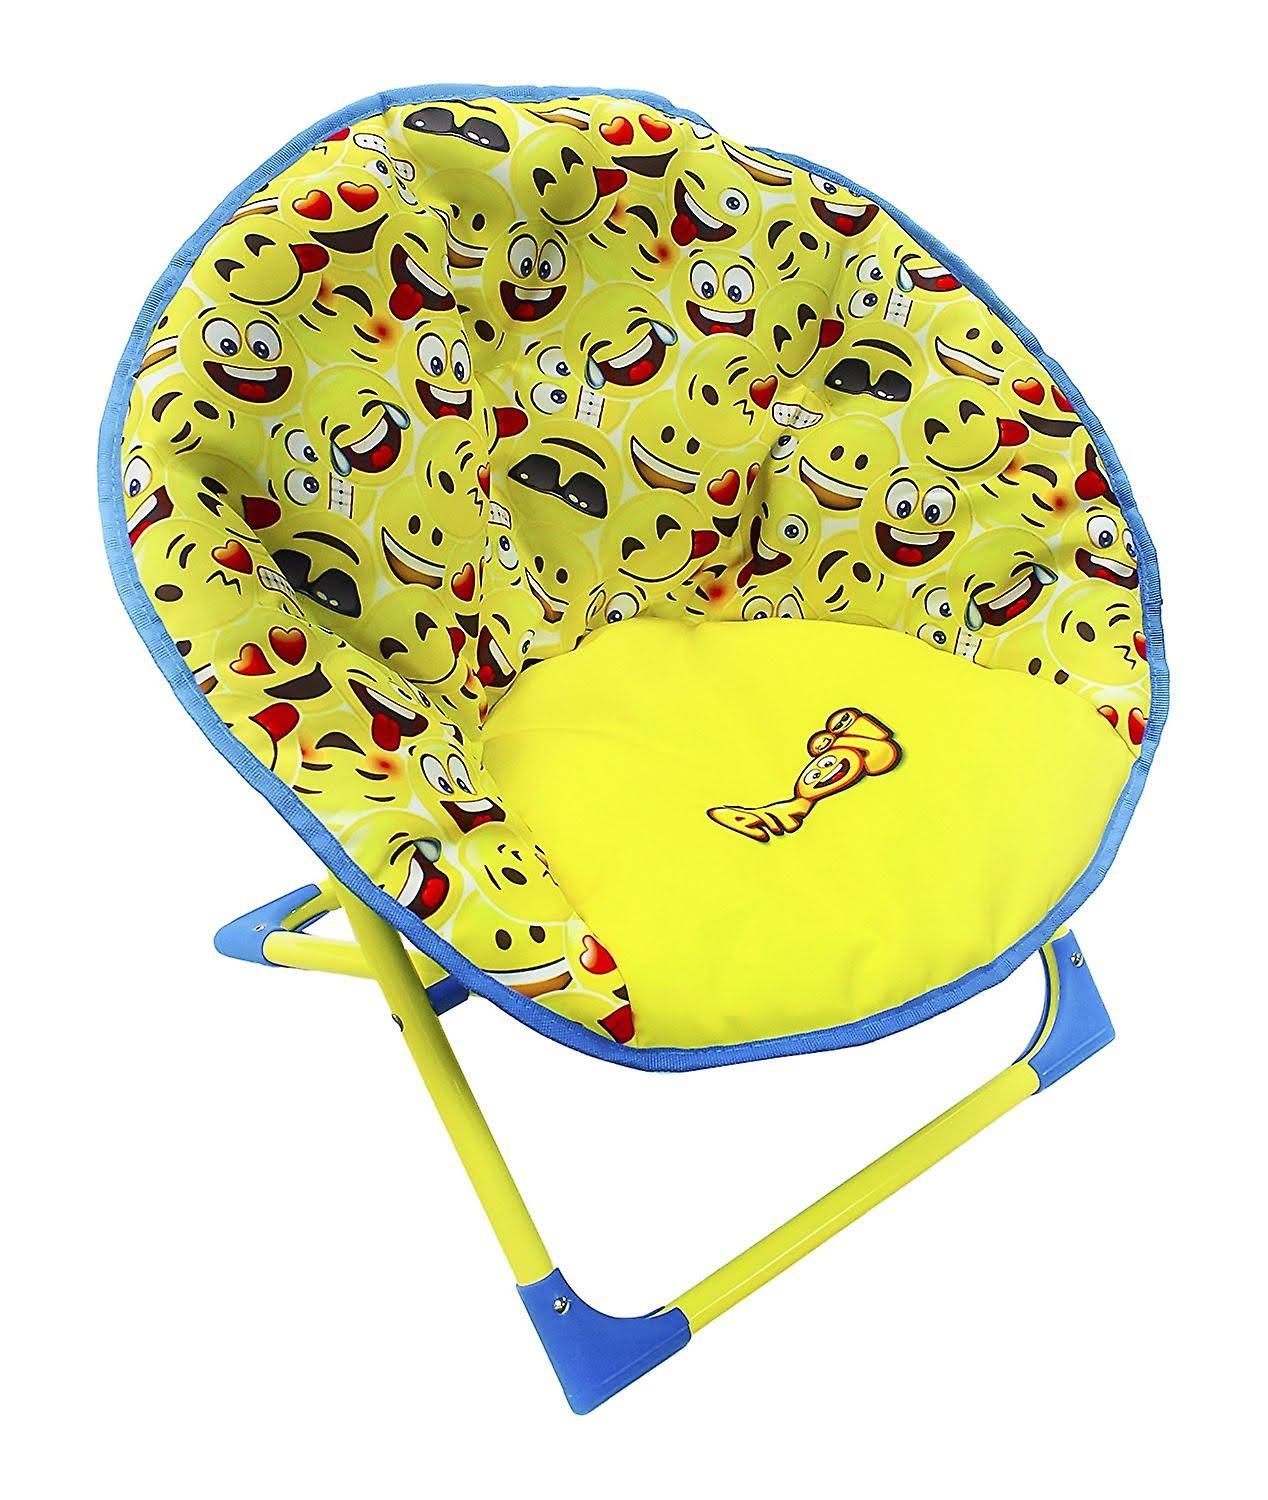 HGL 13132 Fun Folding Kids Chair - Emoji Moon